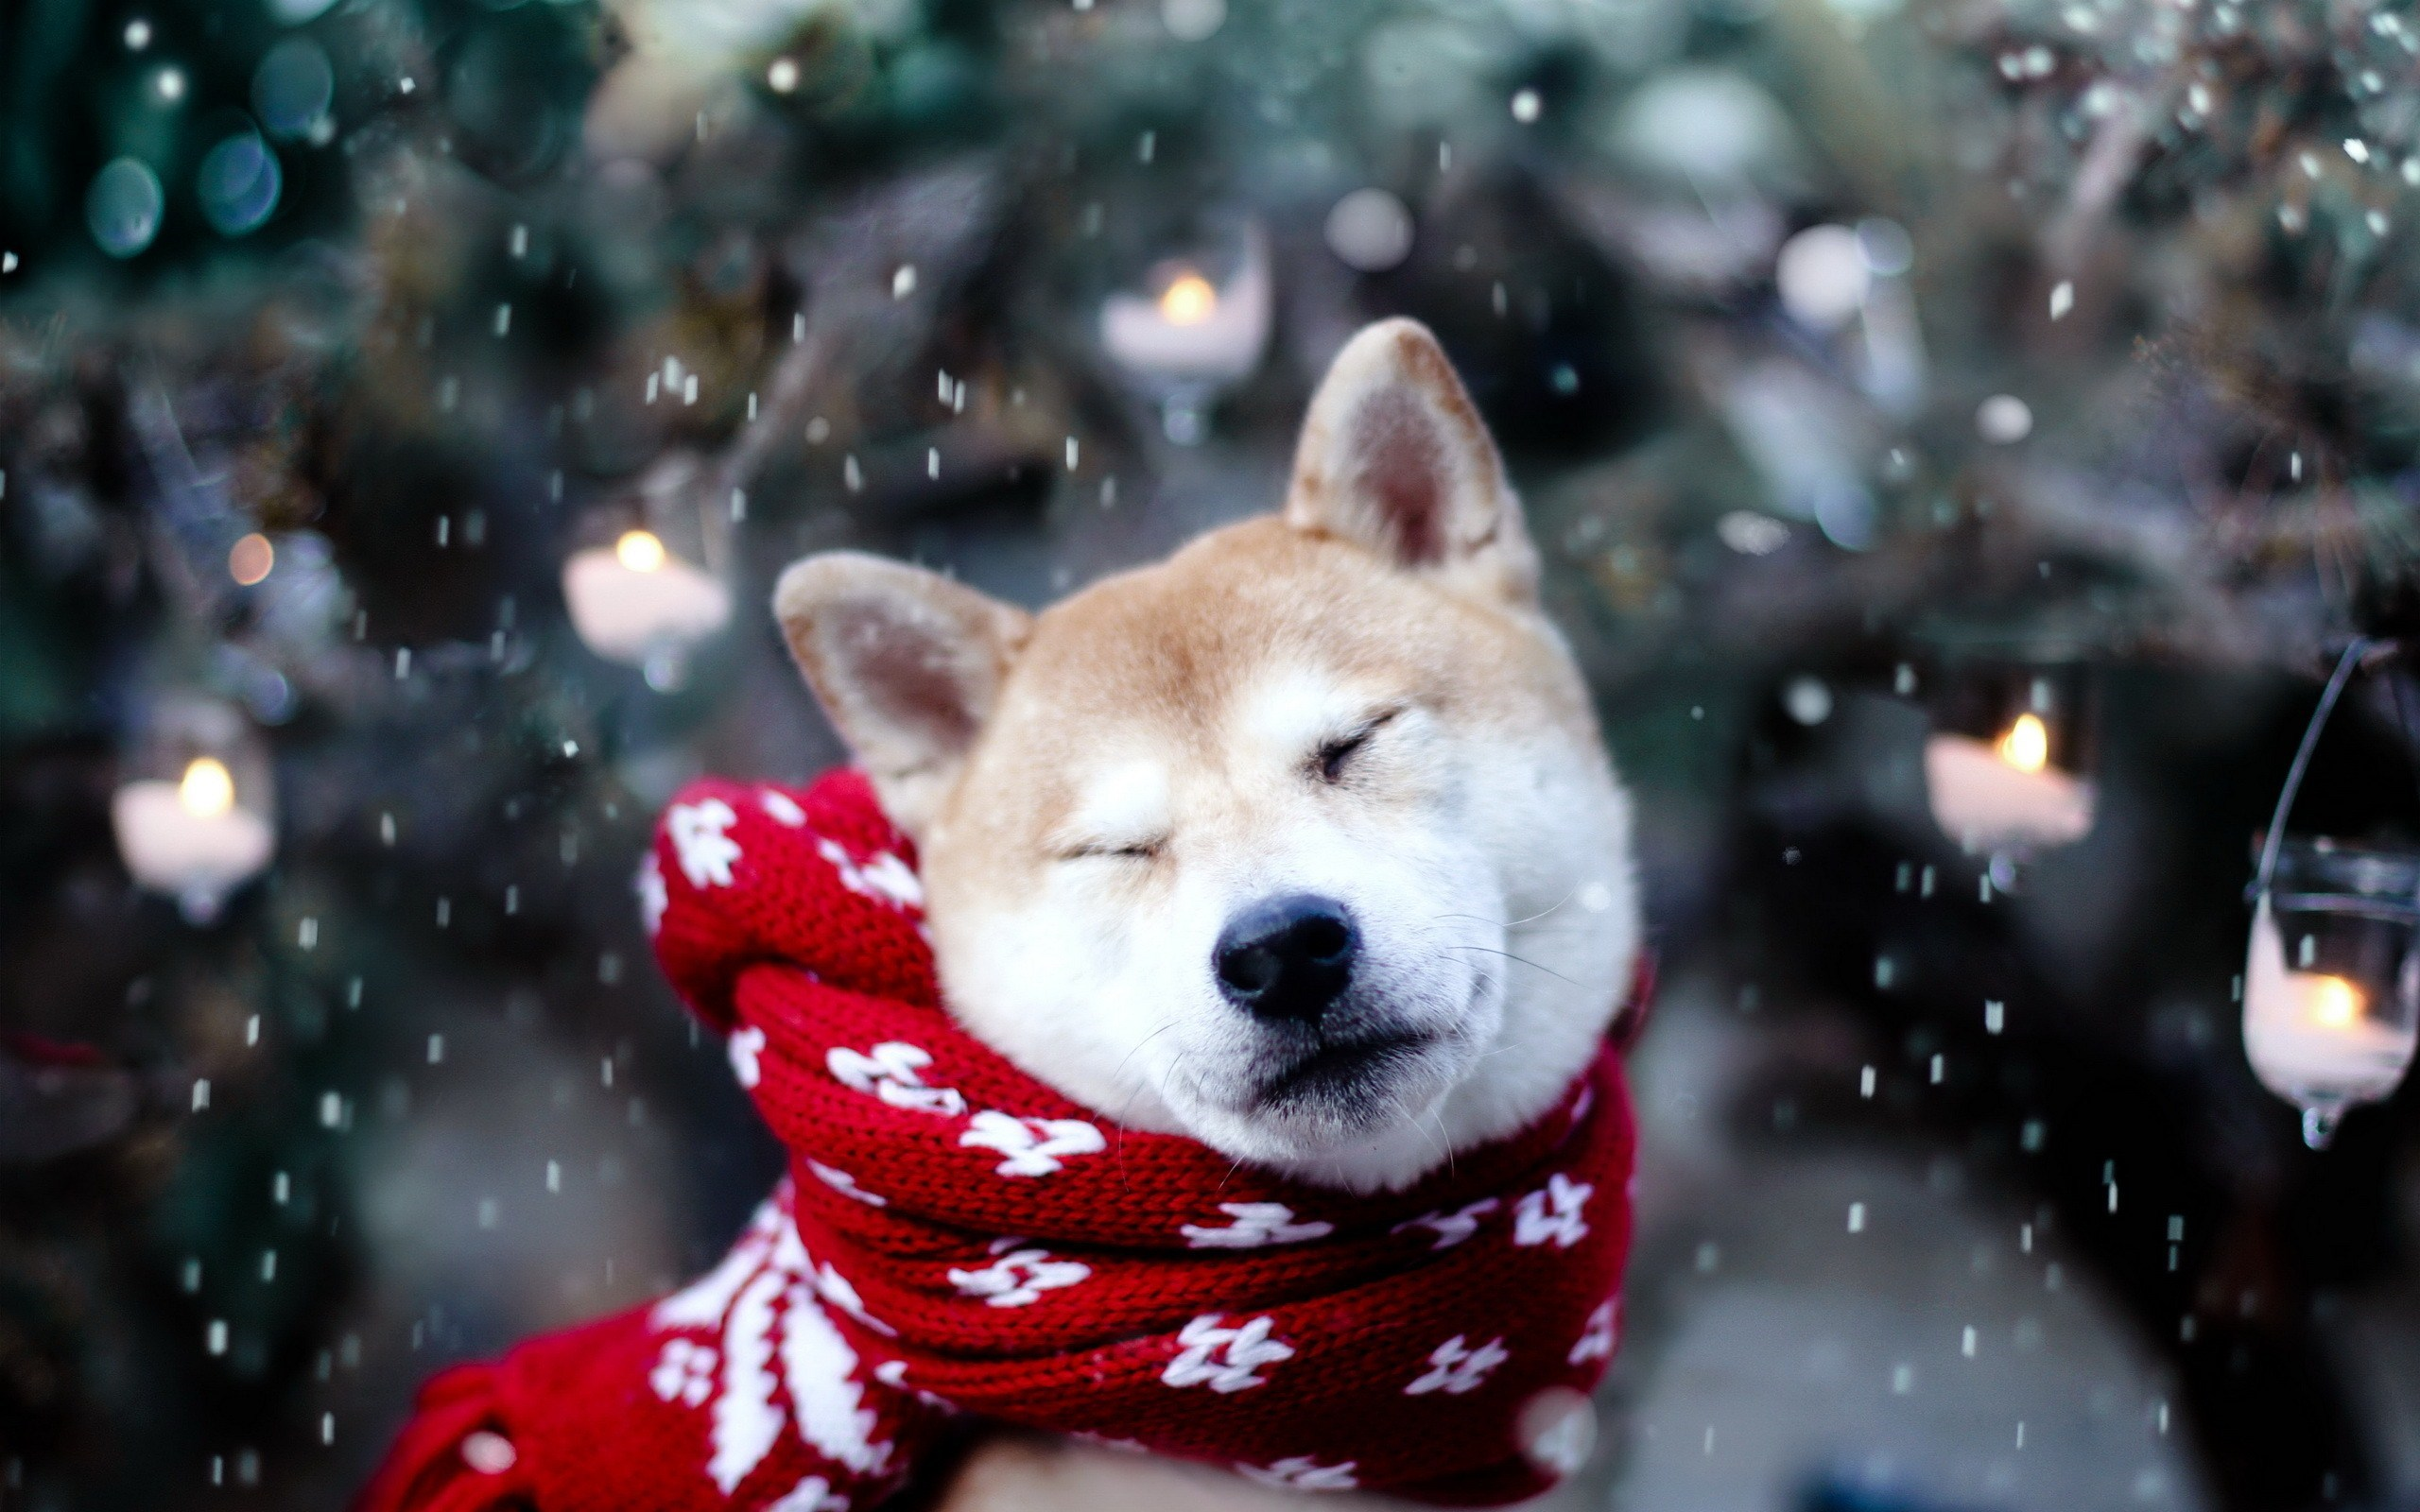 Cute Dog Winter Snow Snowflakes Nature Photo